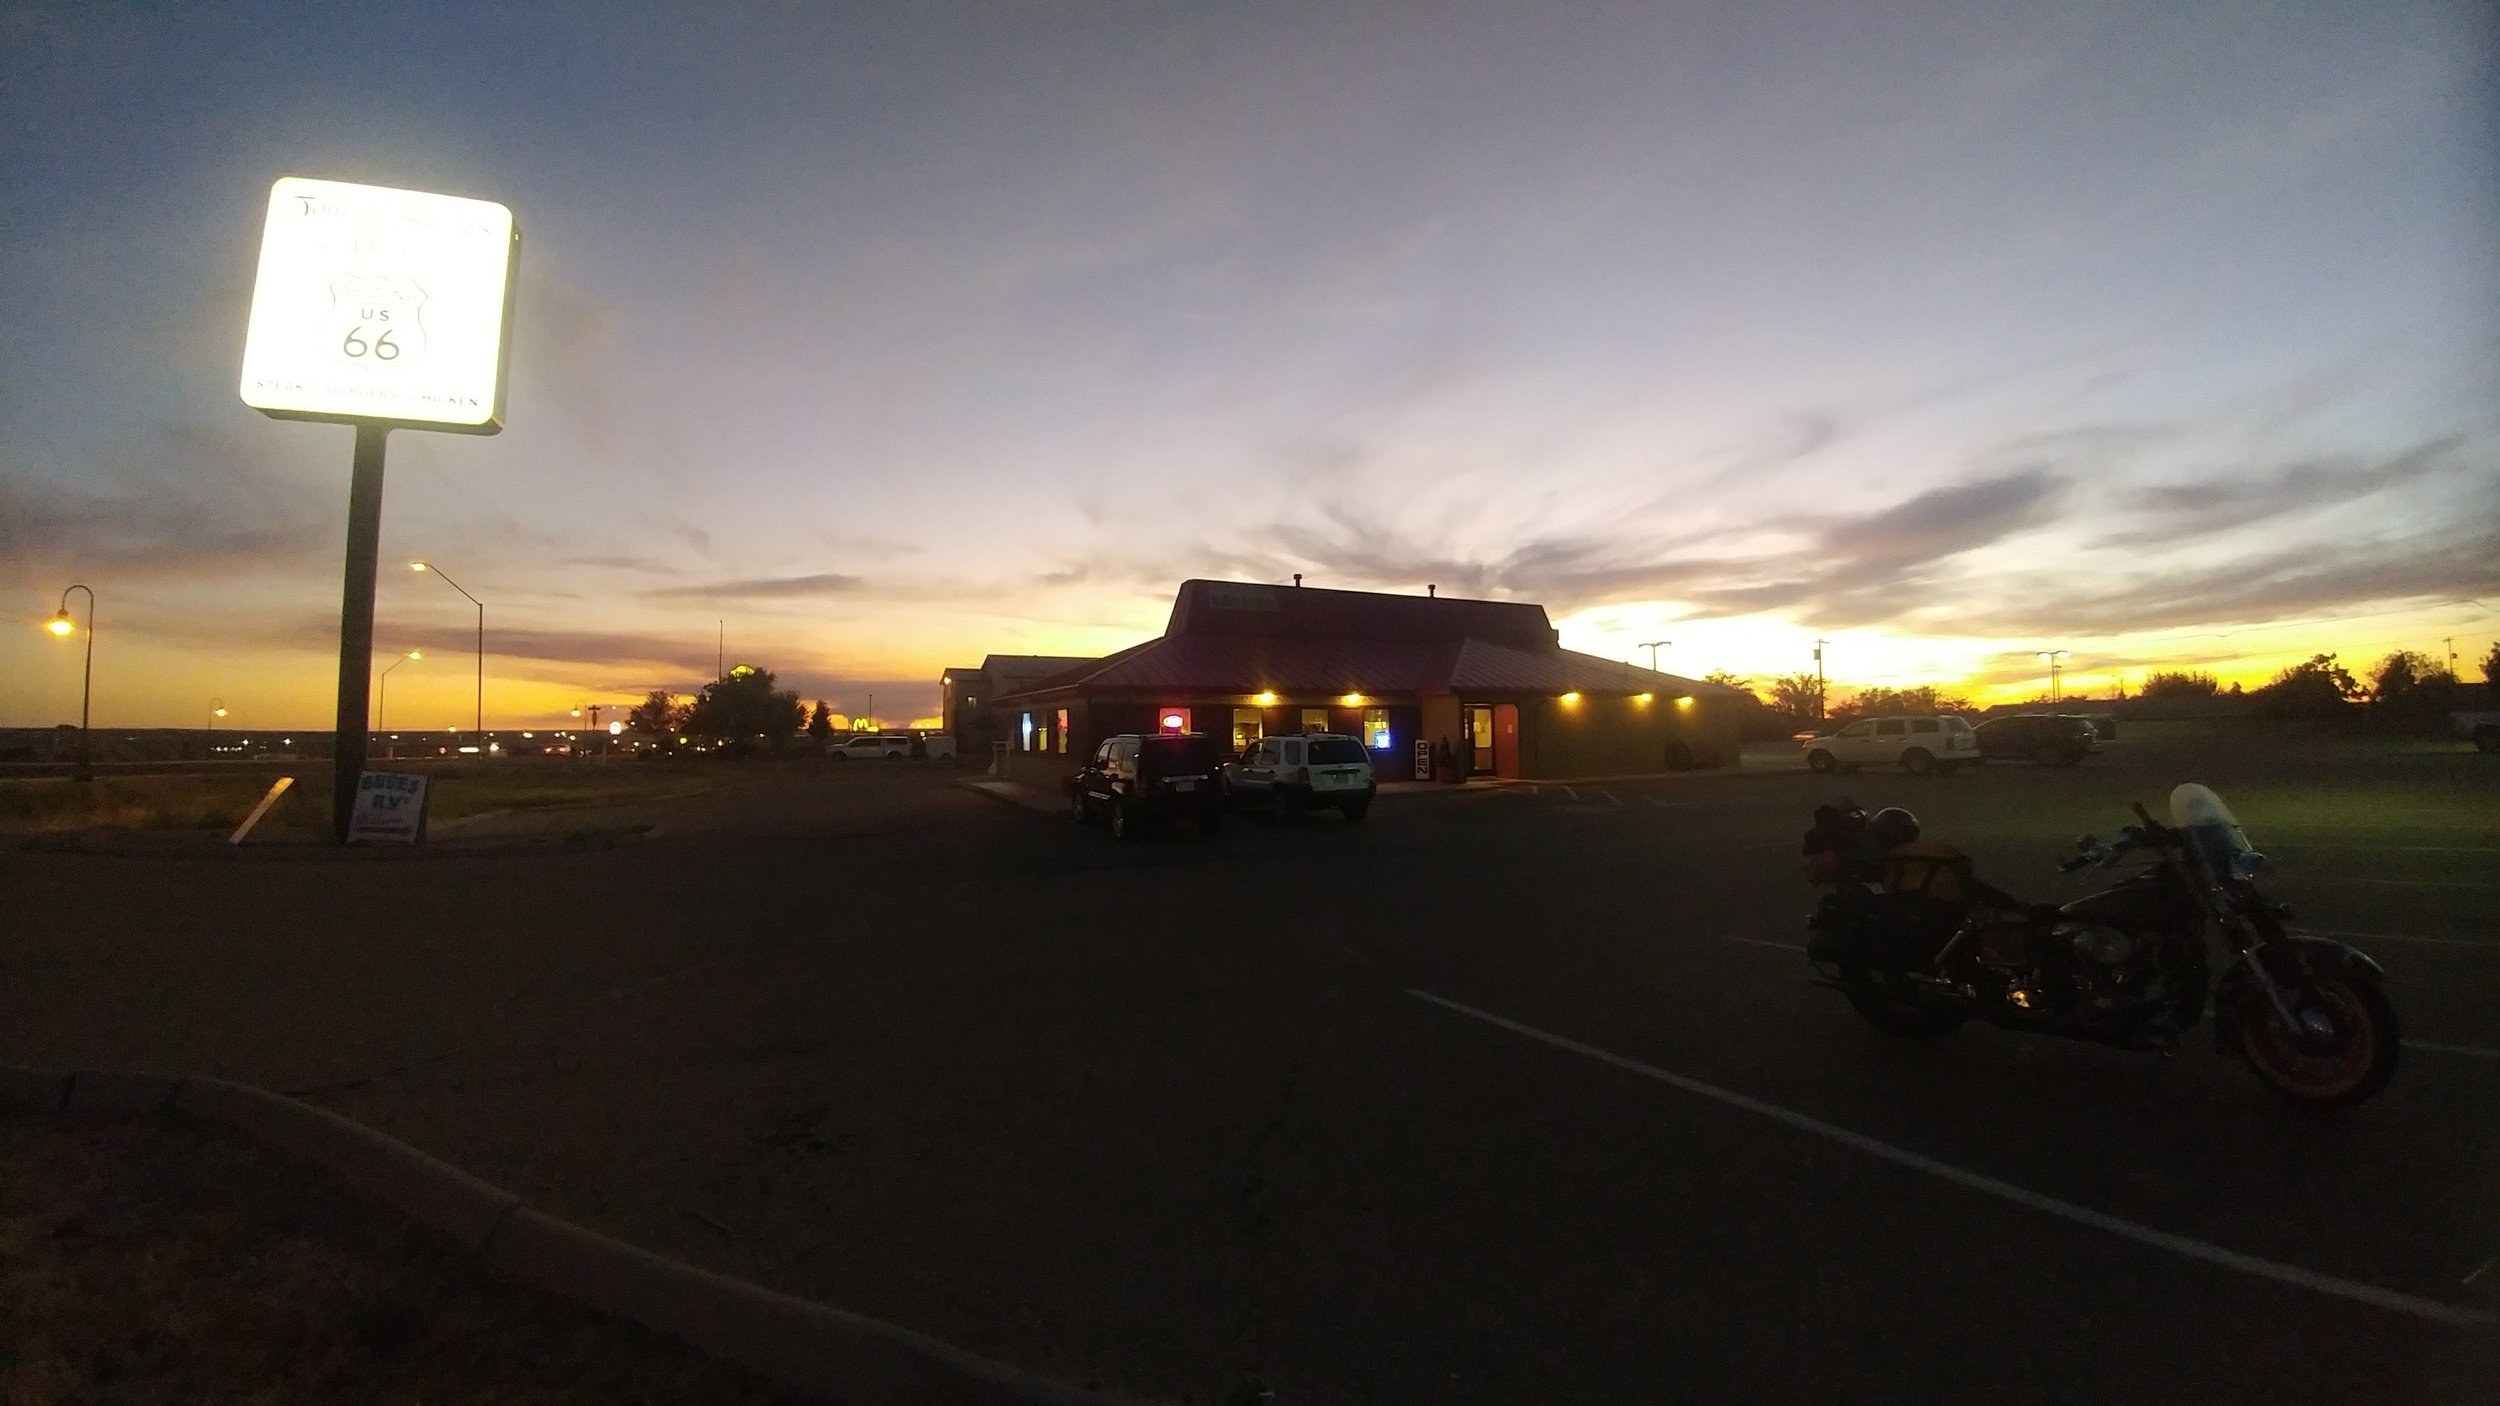 Holbrook Arizona and the Benchmark fire plume of smoke just to the left of the building on the horizon